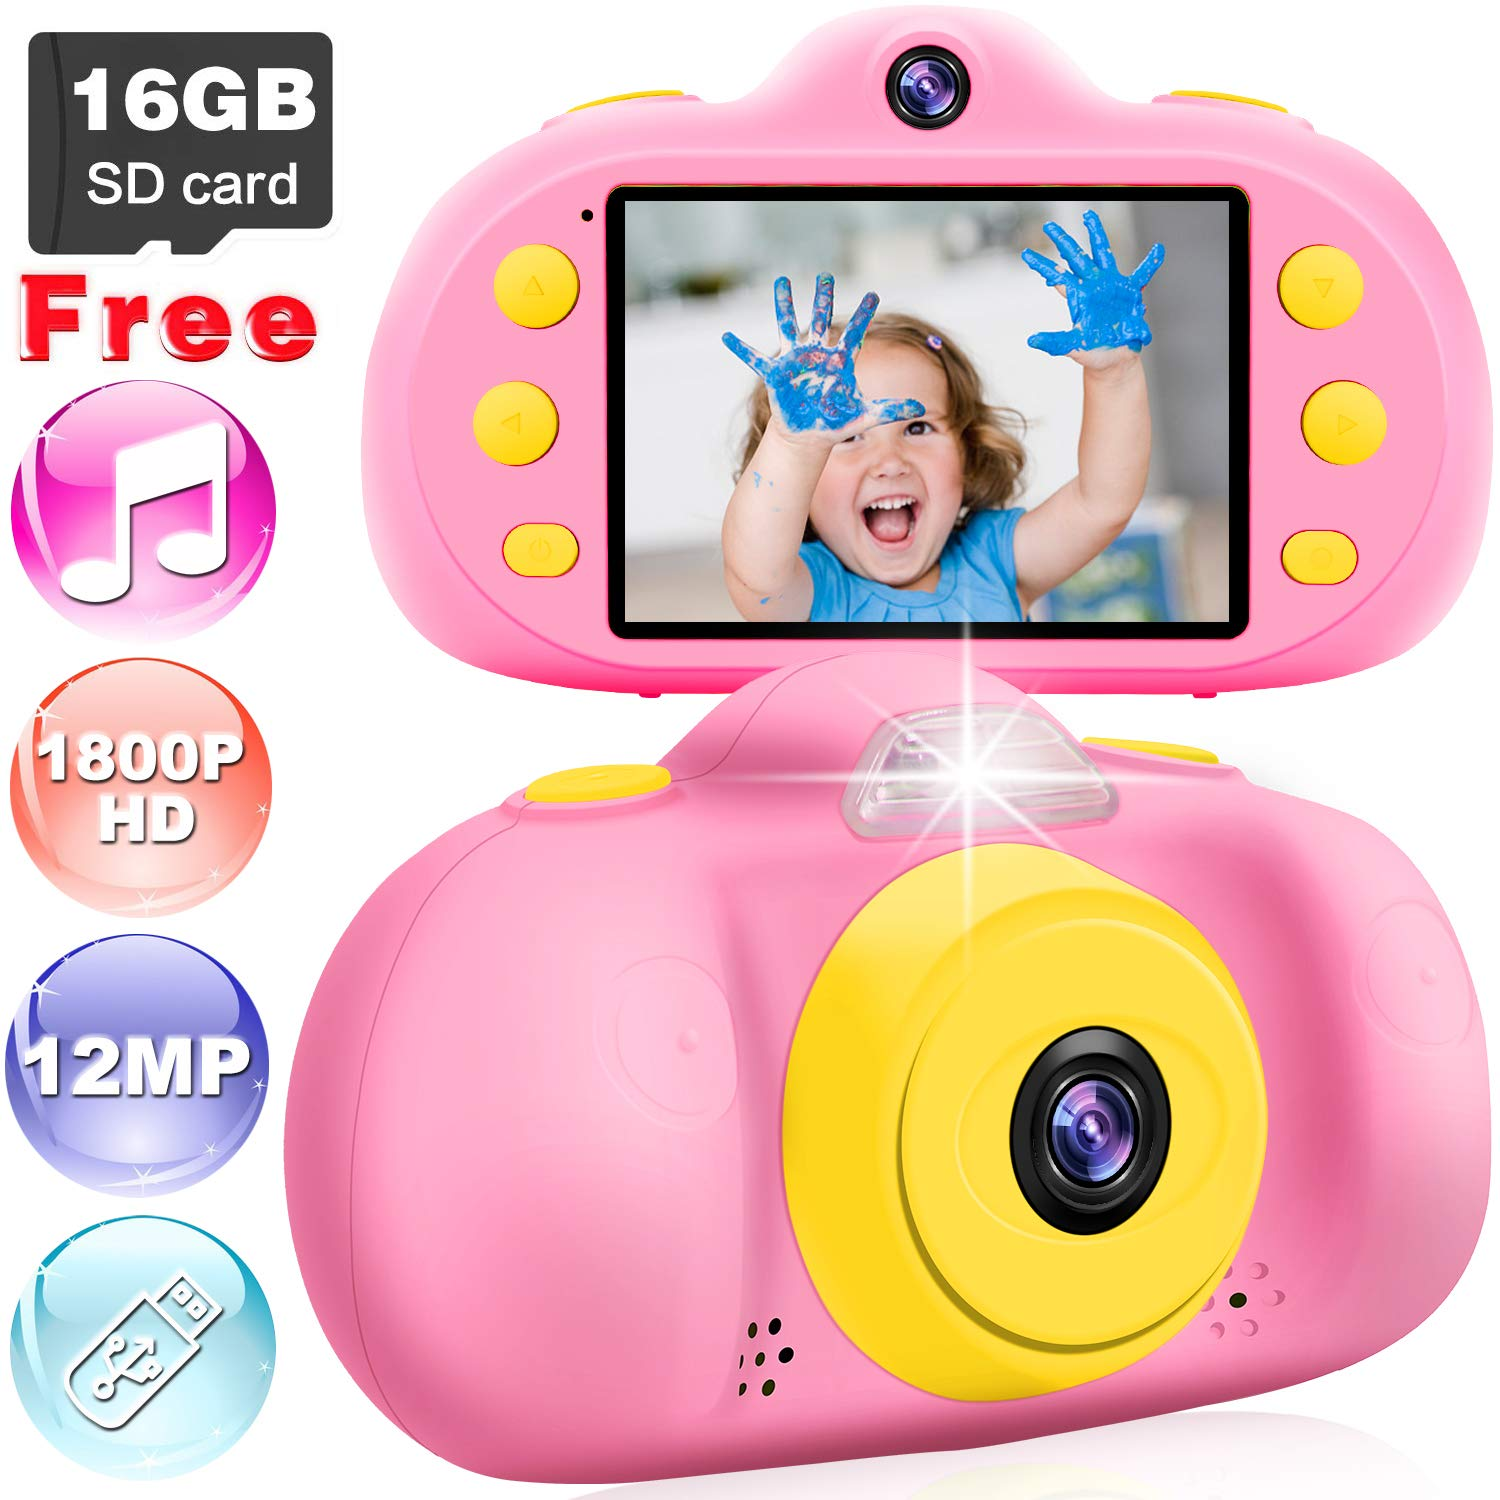 Kids Camera Gifts for Girls, 12.0MP HD 1080P Child Cameras with MP3 Player, LCD Screen Mini Camcorder Outdoor Play Toy Baco to School Gift for 4-8 Year Old Toddlers(16GB Memory Card Included), Pink by GreaSmart (Image #1)